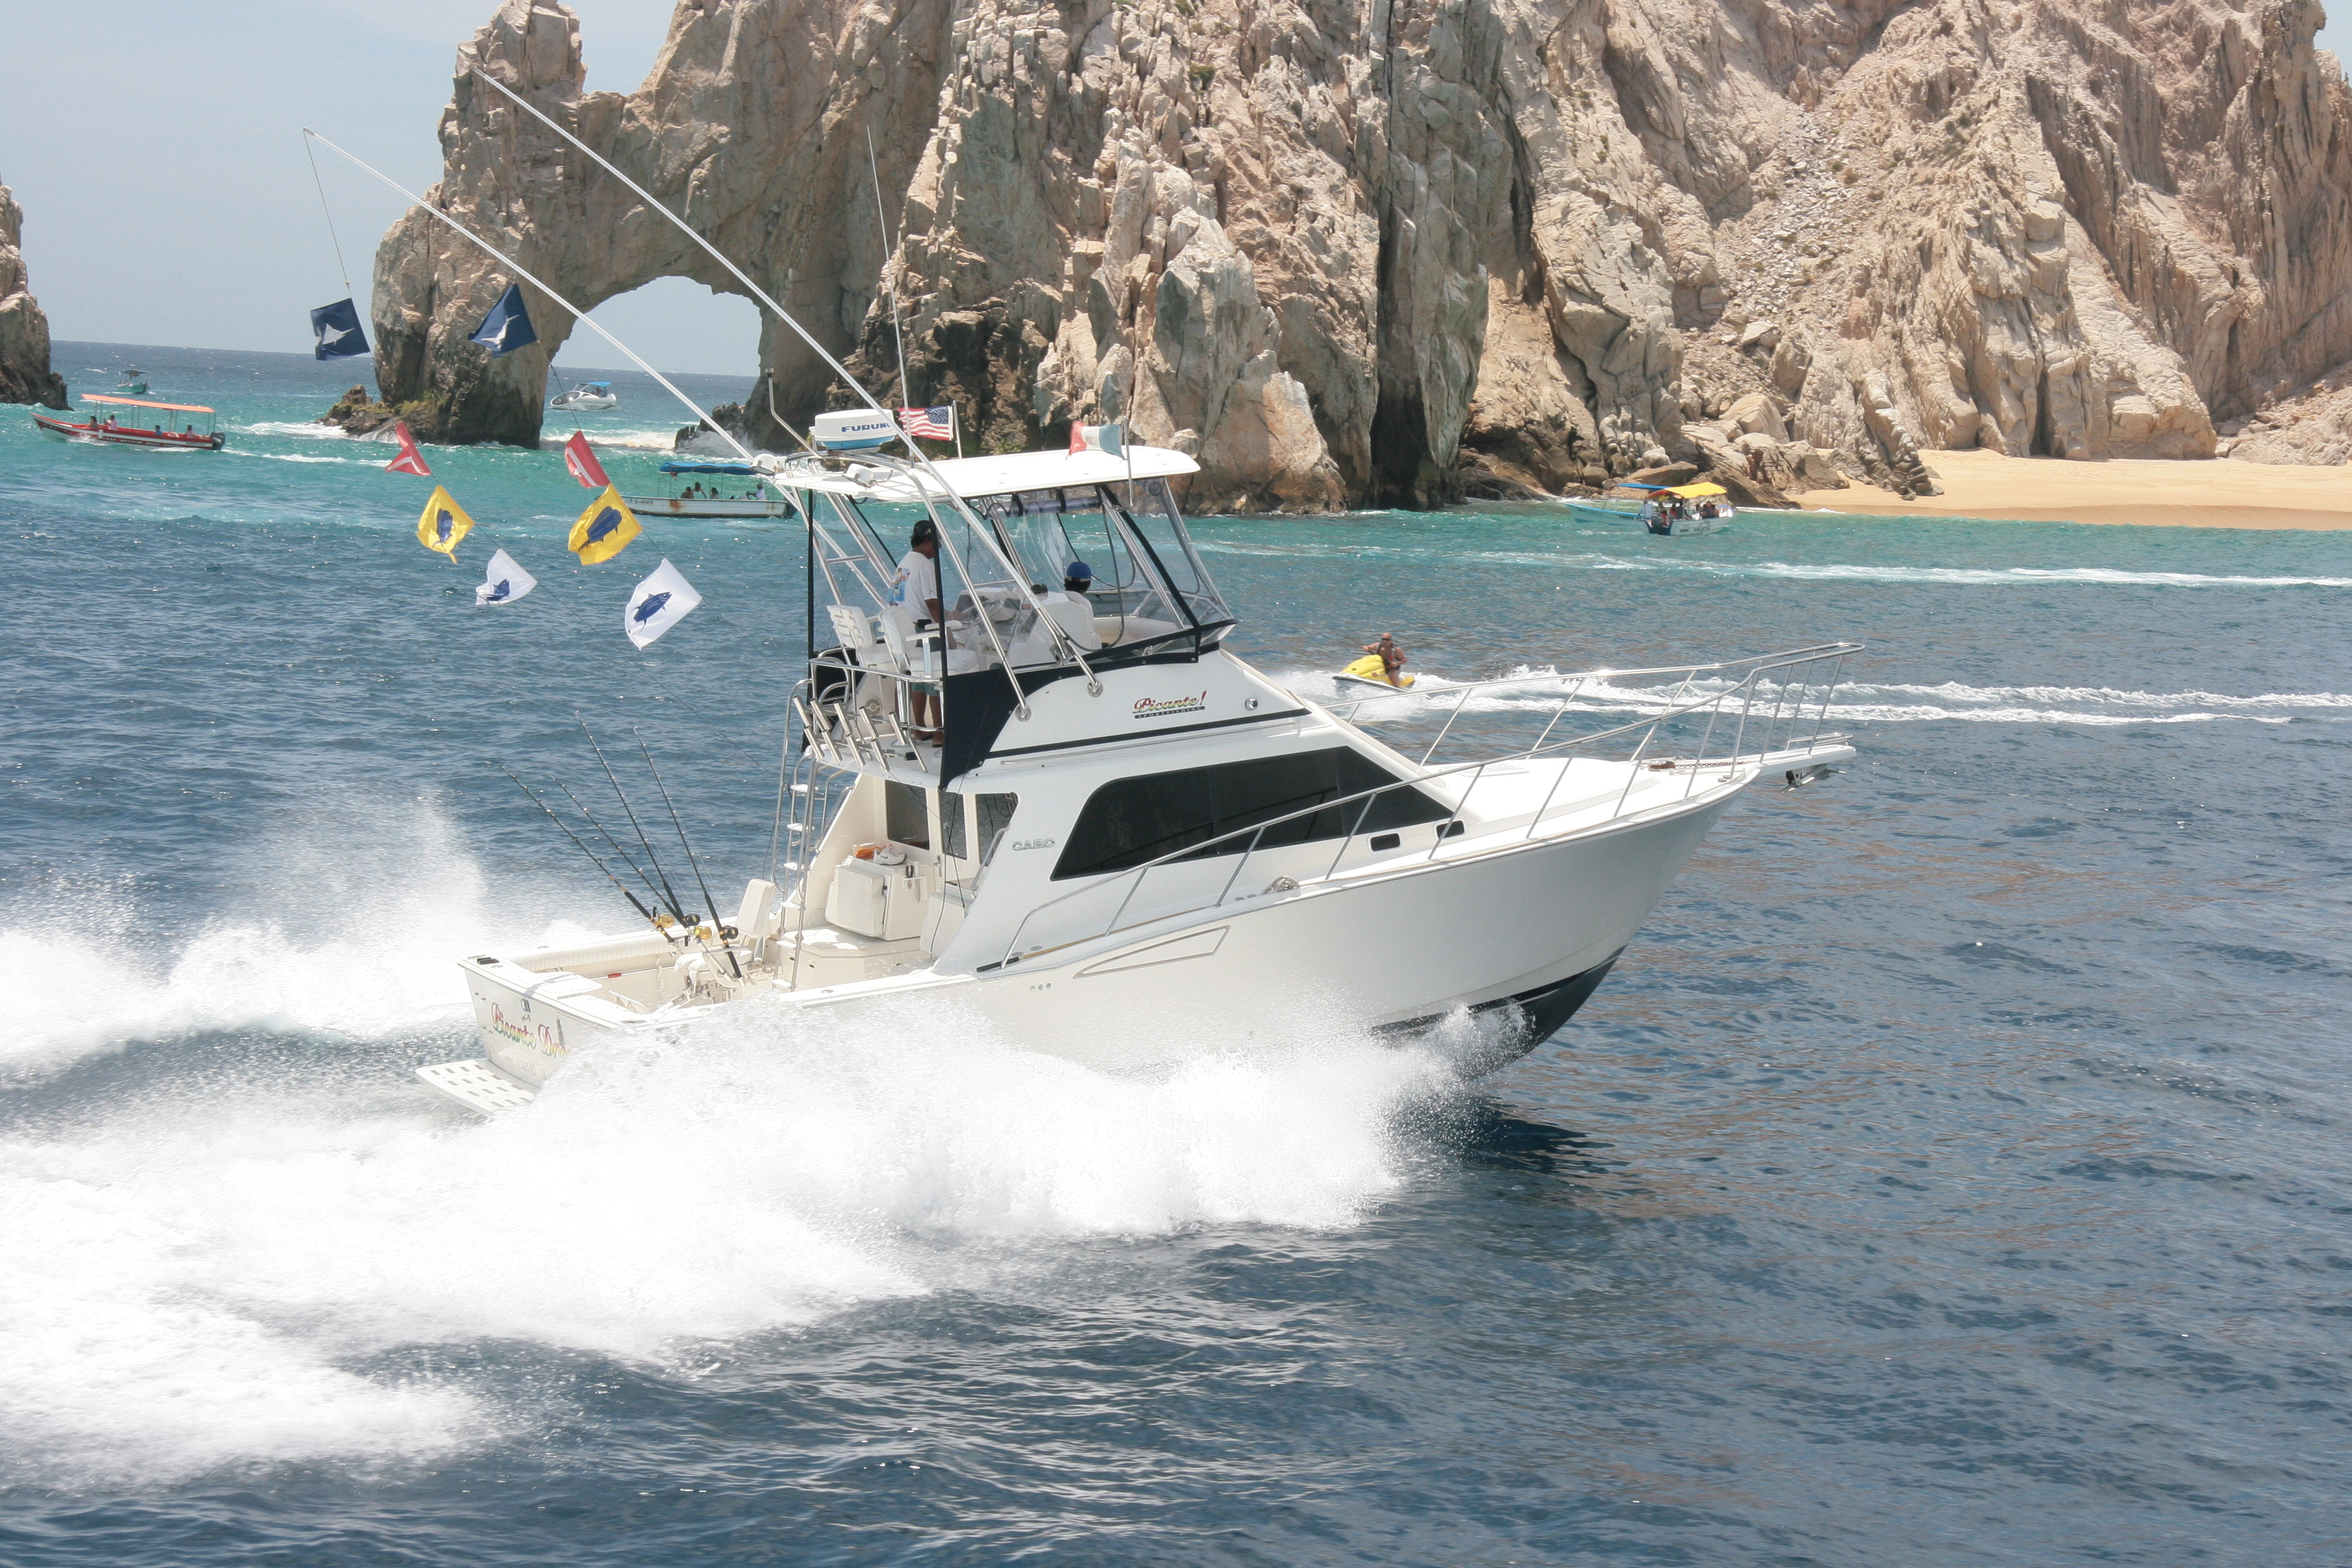 Cabo san lucas fishing cabo fishing cabo san lucas mexico for Marlin fishing cabo